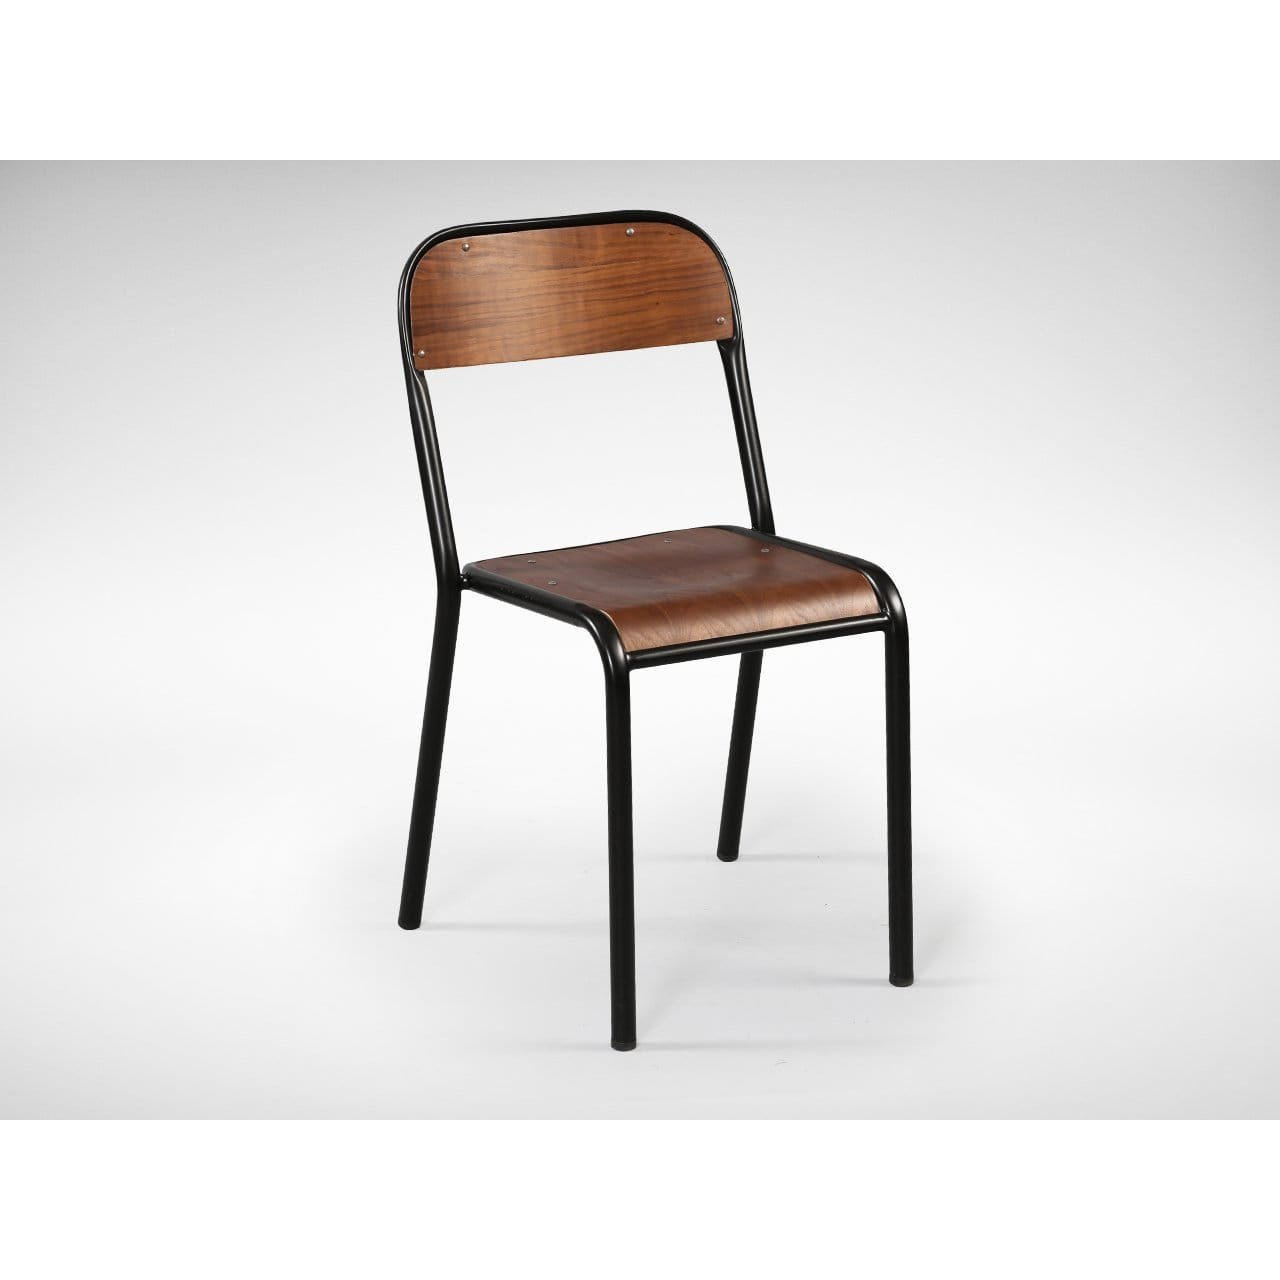 About A Chair 12 Side Chair.Lama Side Chair Wood Comfort Design The Chair Table People